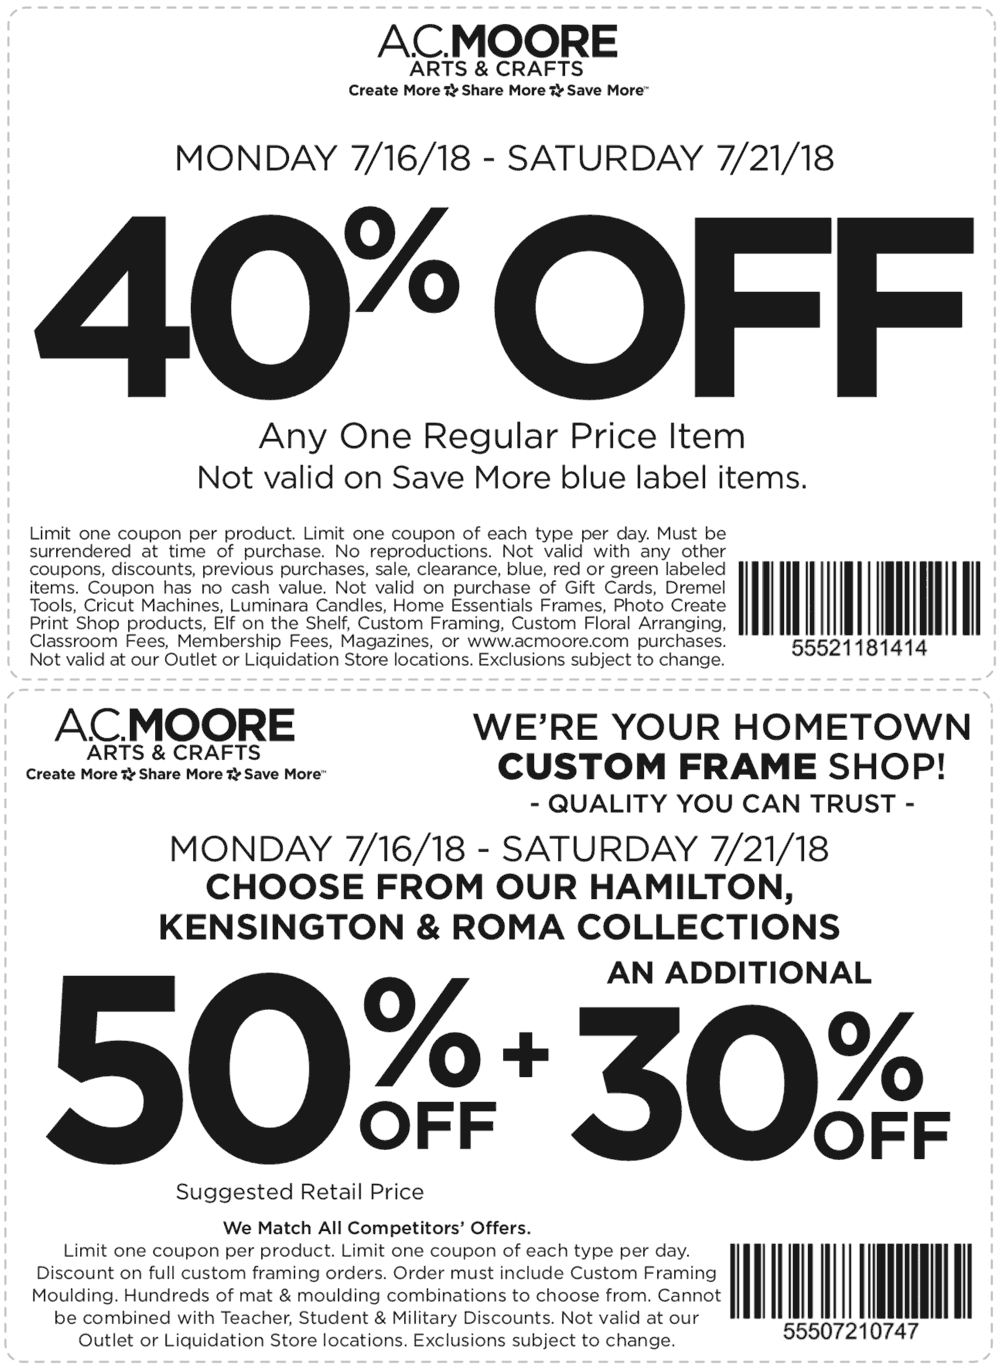 A.C.Moore.com Promo Coupon 40% off a single item at A.C. Moore